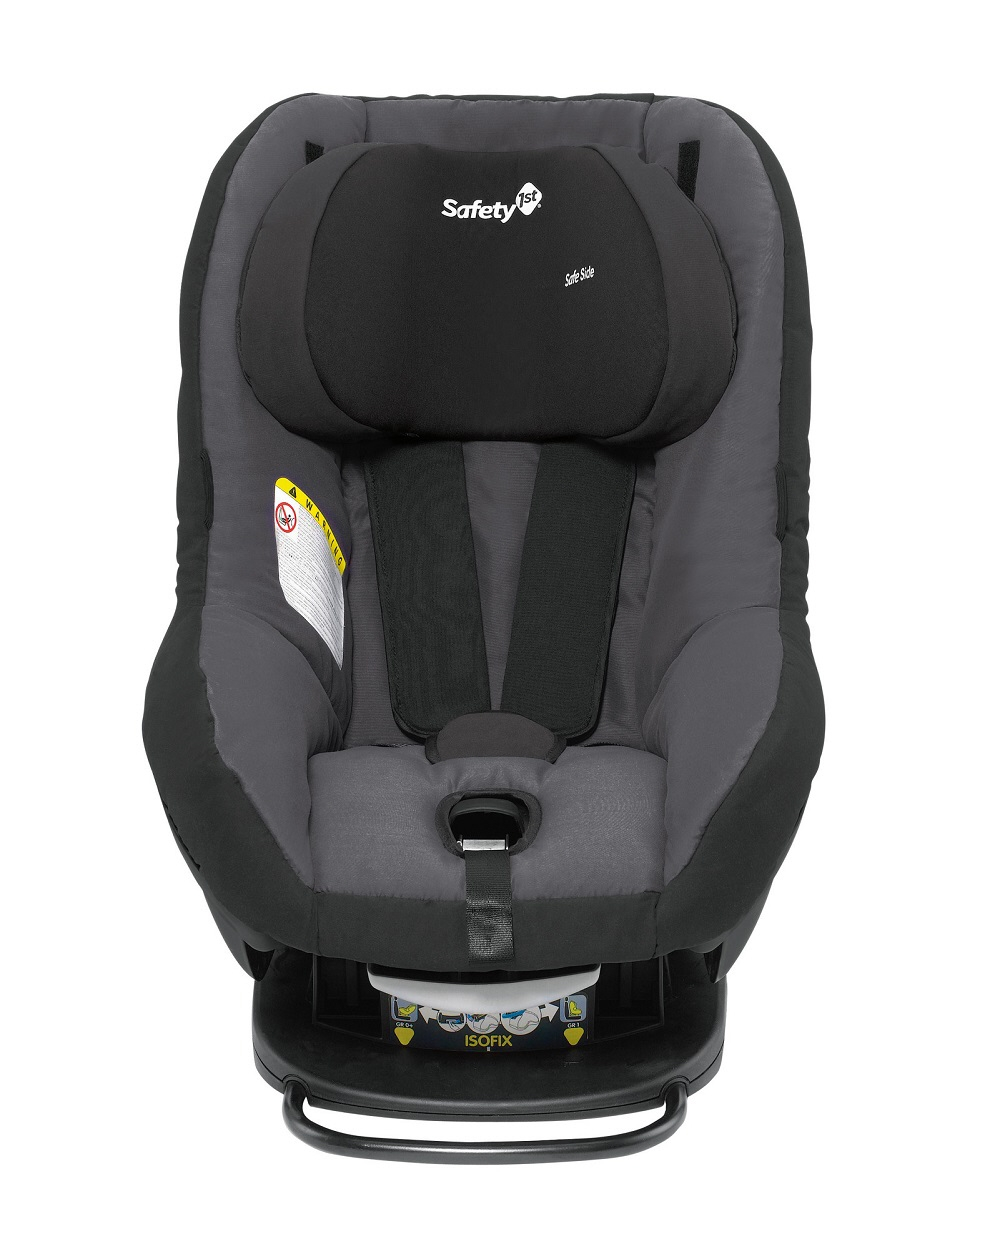 safety 1st child car seat primeofix buy at kidsroom campaigns everything in red. Black Bedroom Furniture Sets. Home Design Ideas